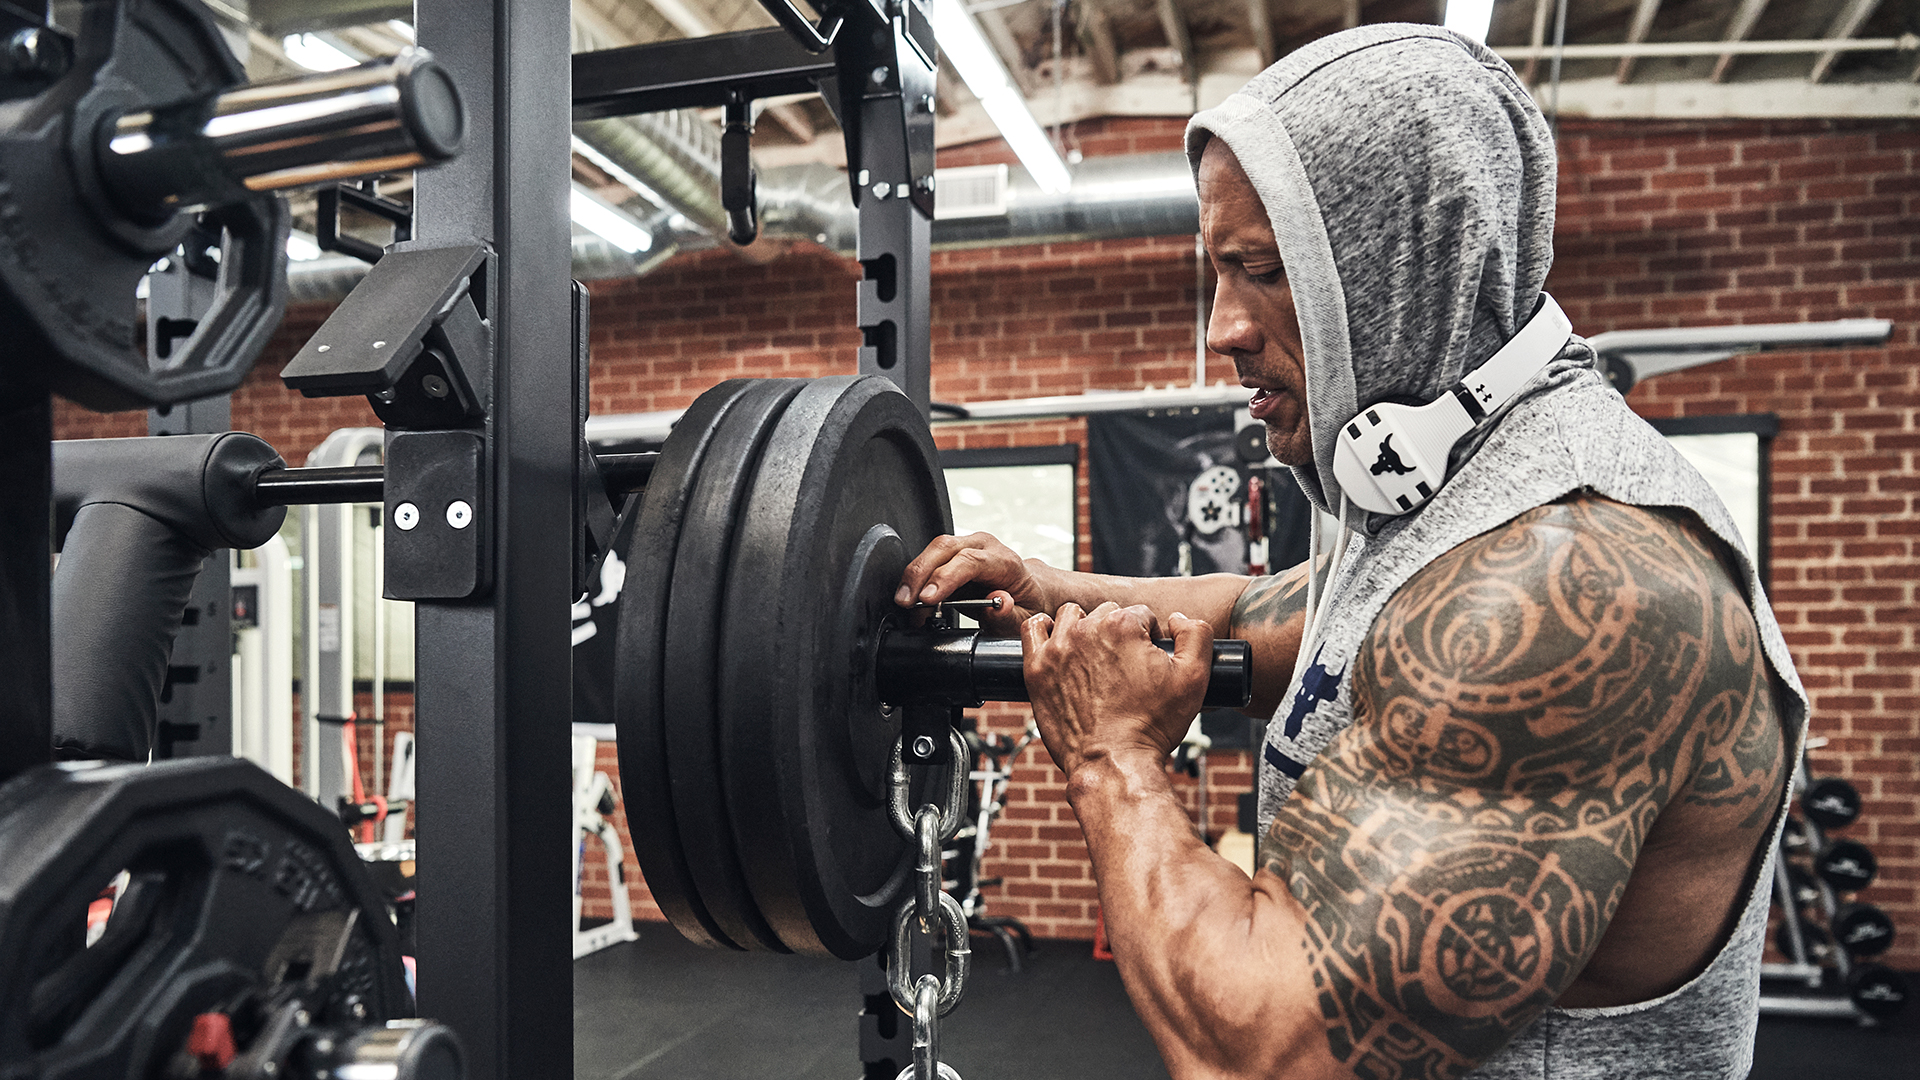 Dwayne 'The Rock' Johnson lifting weights in Under Armour tank